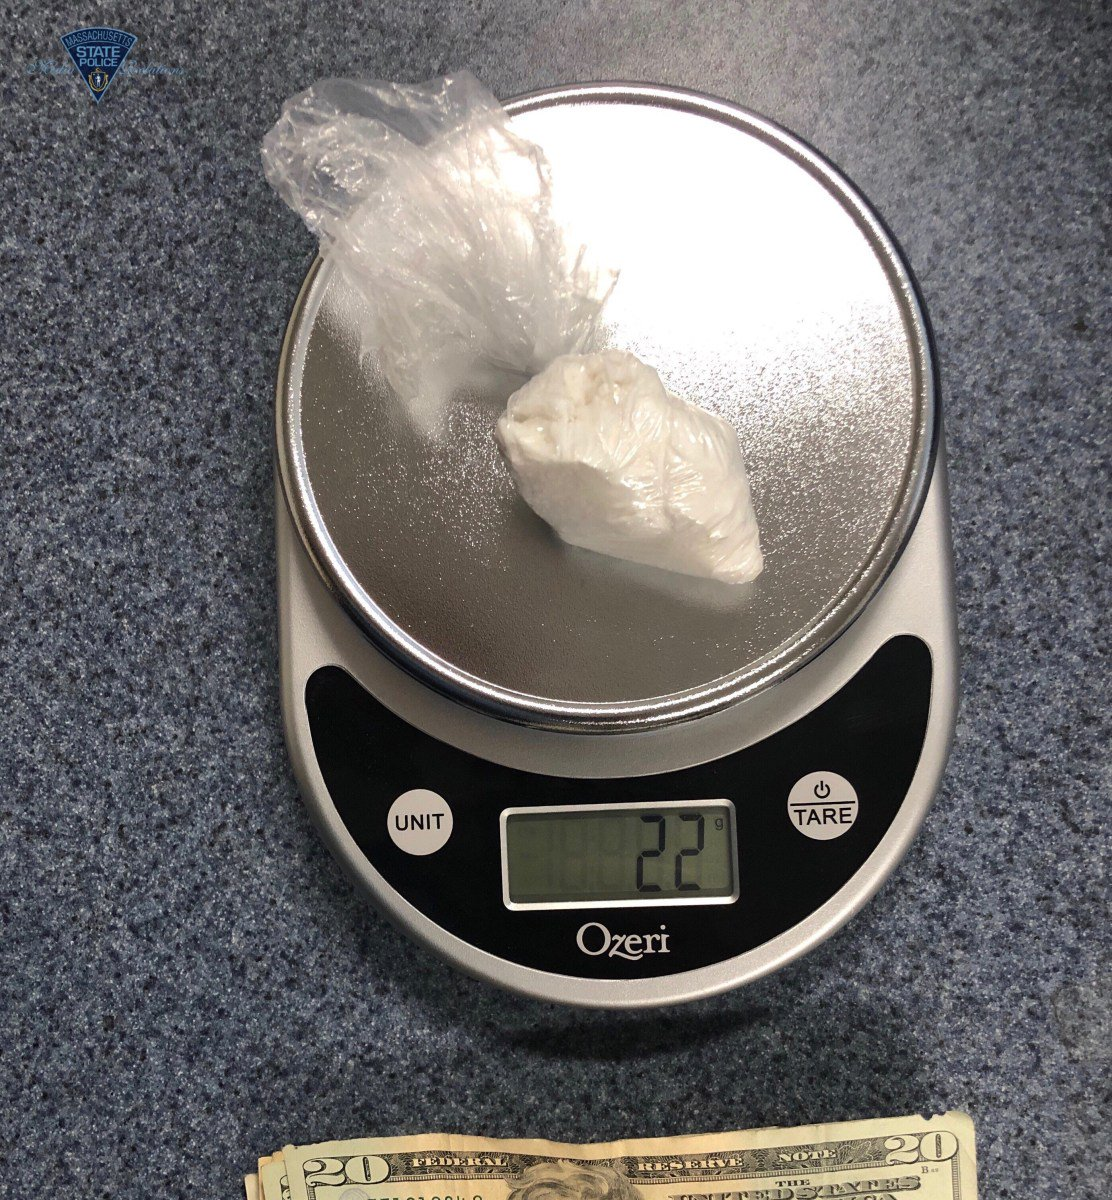 Fall River Man Arrested for Trafficking Cocaine in Brockton: On Saturday evening, at approximately 9:18 p.m., Troopers assigned to the Troop D Community Action Team were on patrol in the city of Brockton, when they stopped a Kia Optima on Warren Avenue… https://t.co/HP9mB2C8Gr https://t.co/Aki7BhOVB0